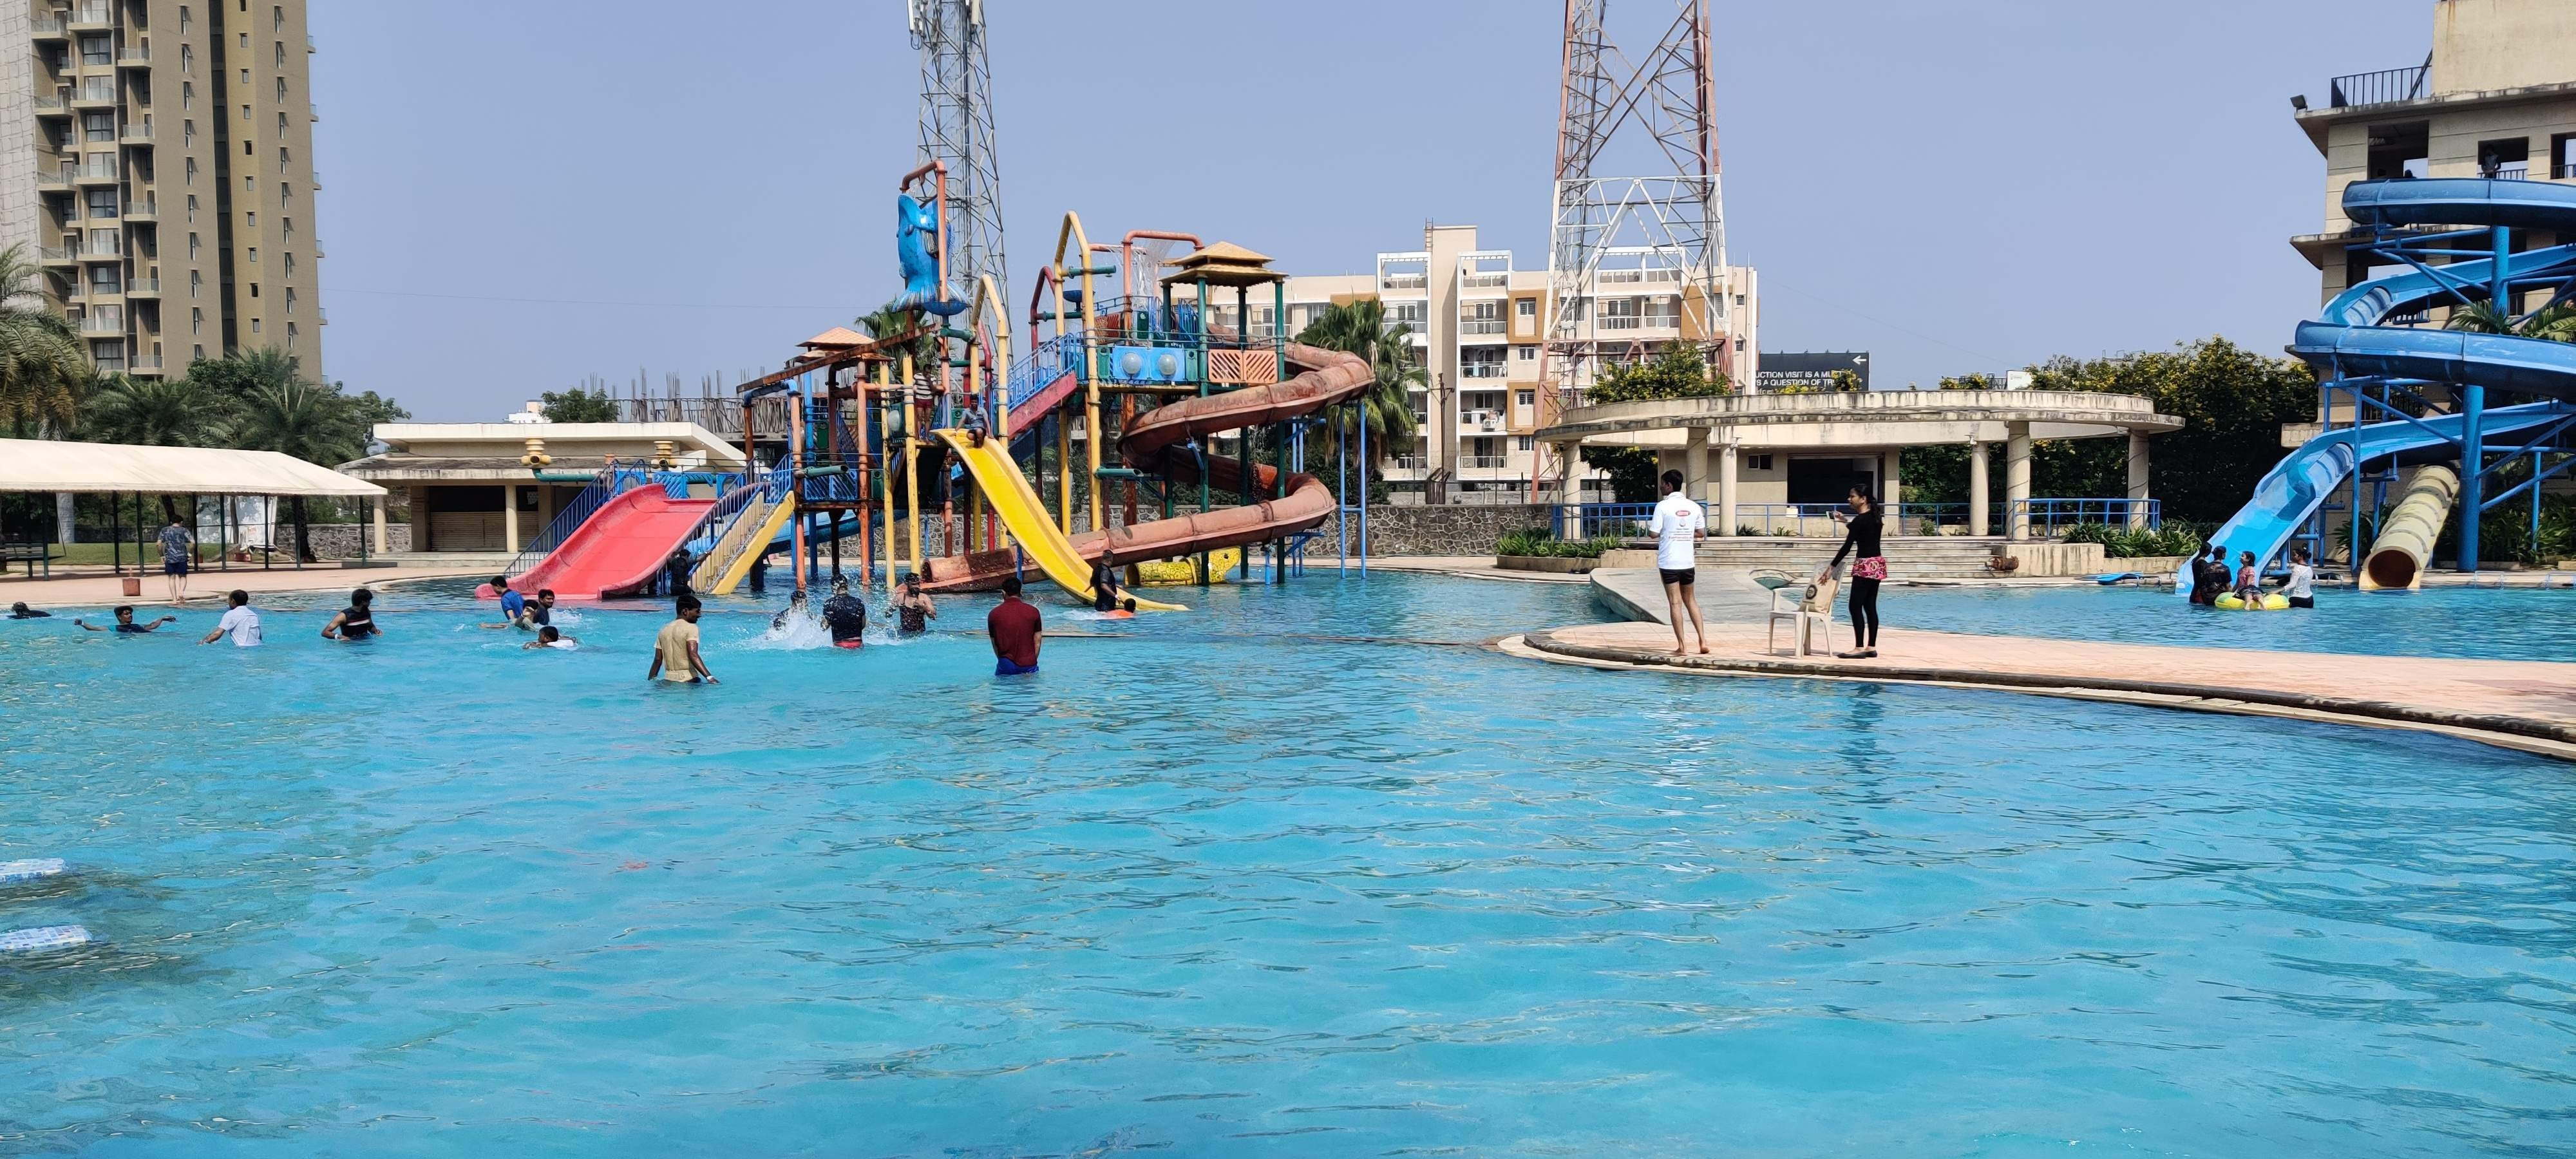 Make Your Weekend Chill At This Amazing Water Park!